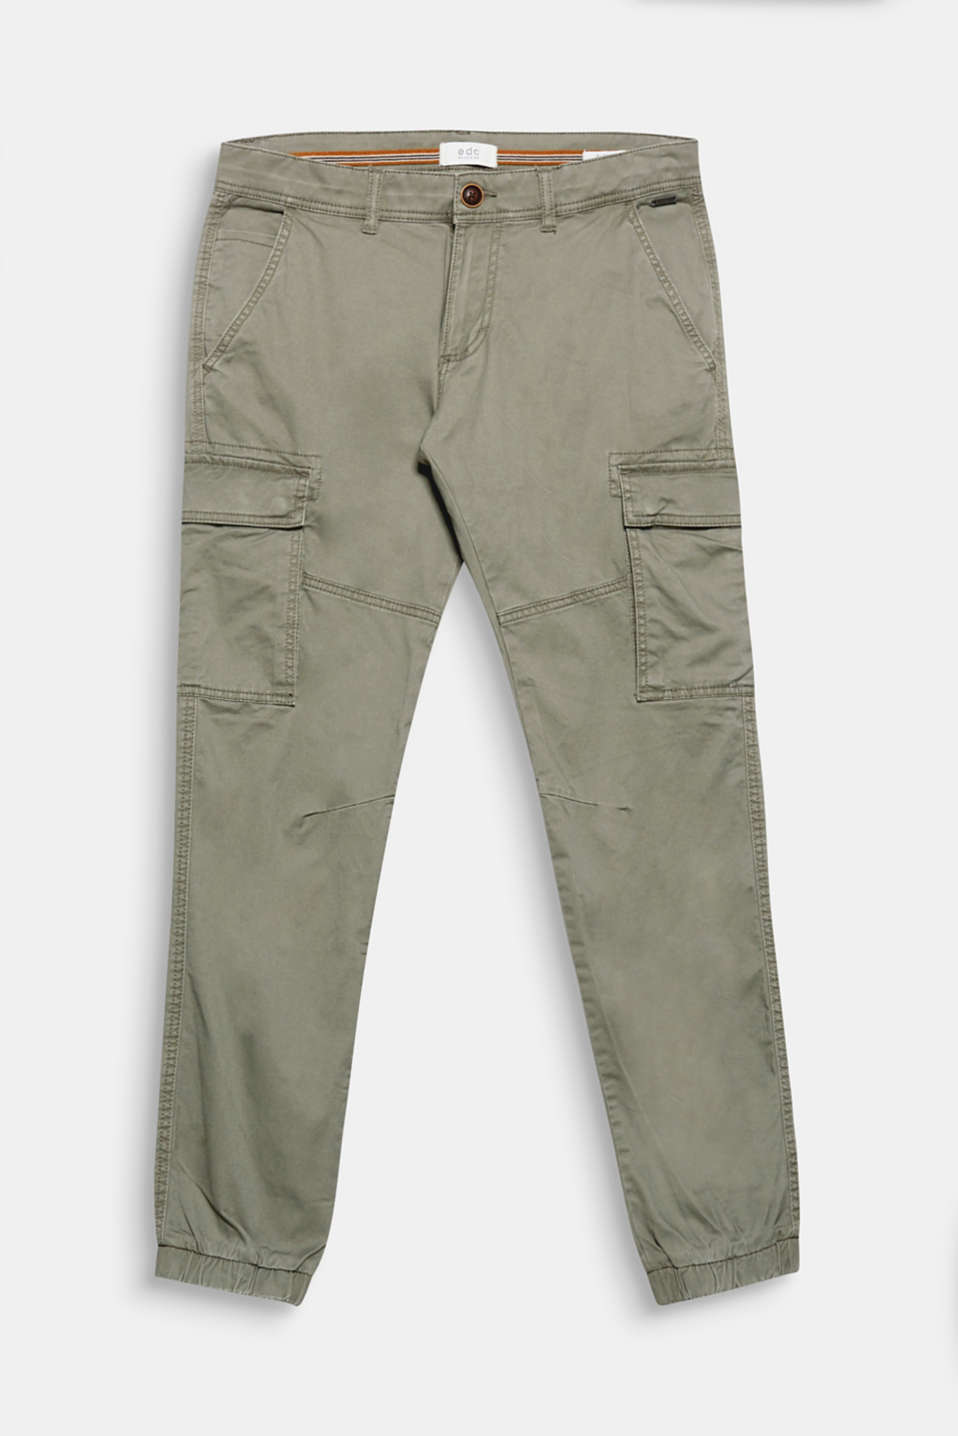 Characteristic details for the flap pockets give these cargo trousers their urban look.